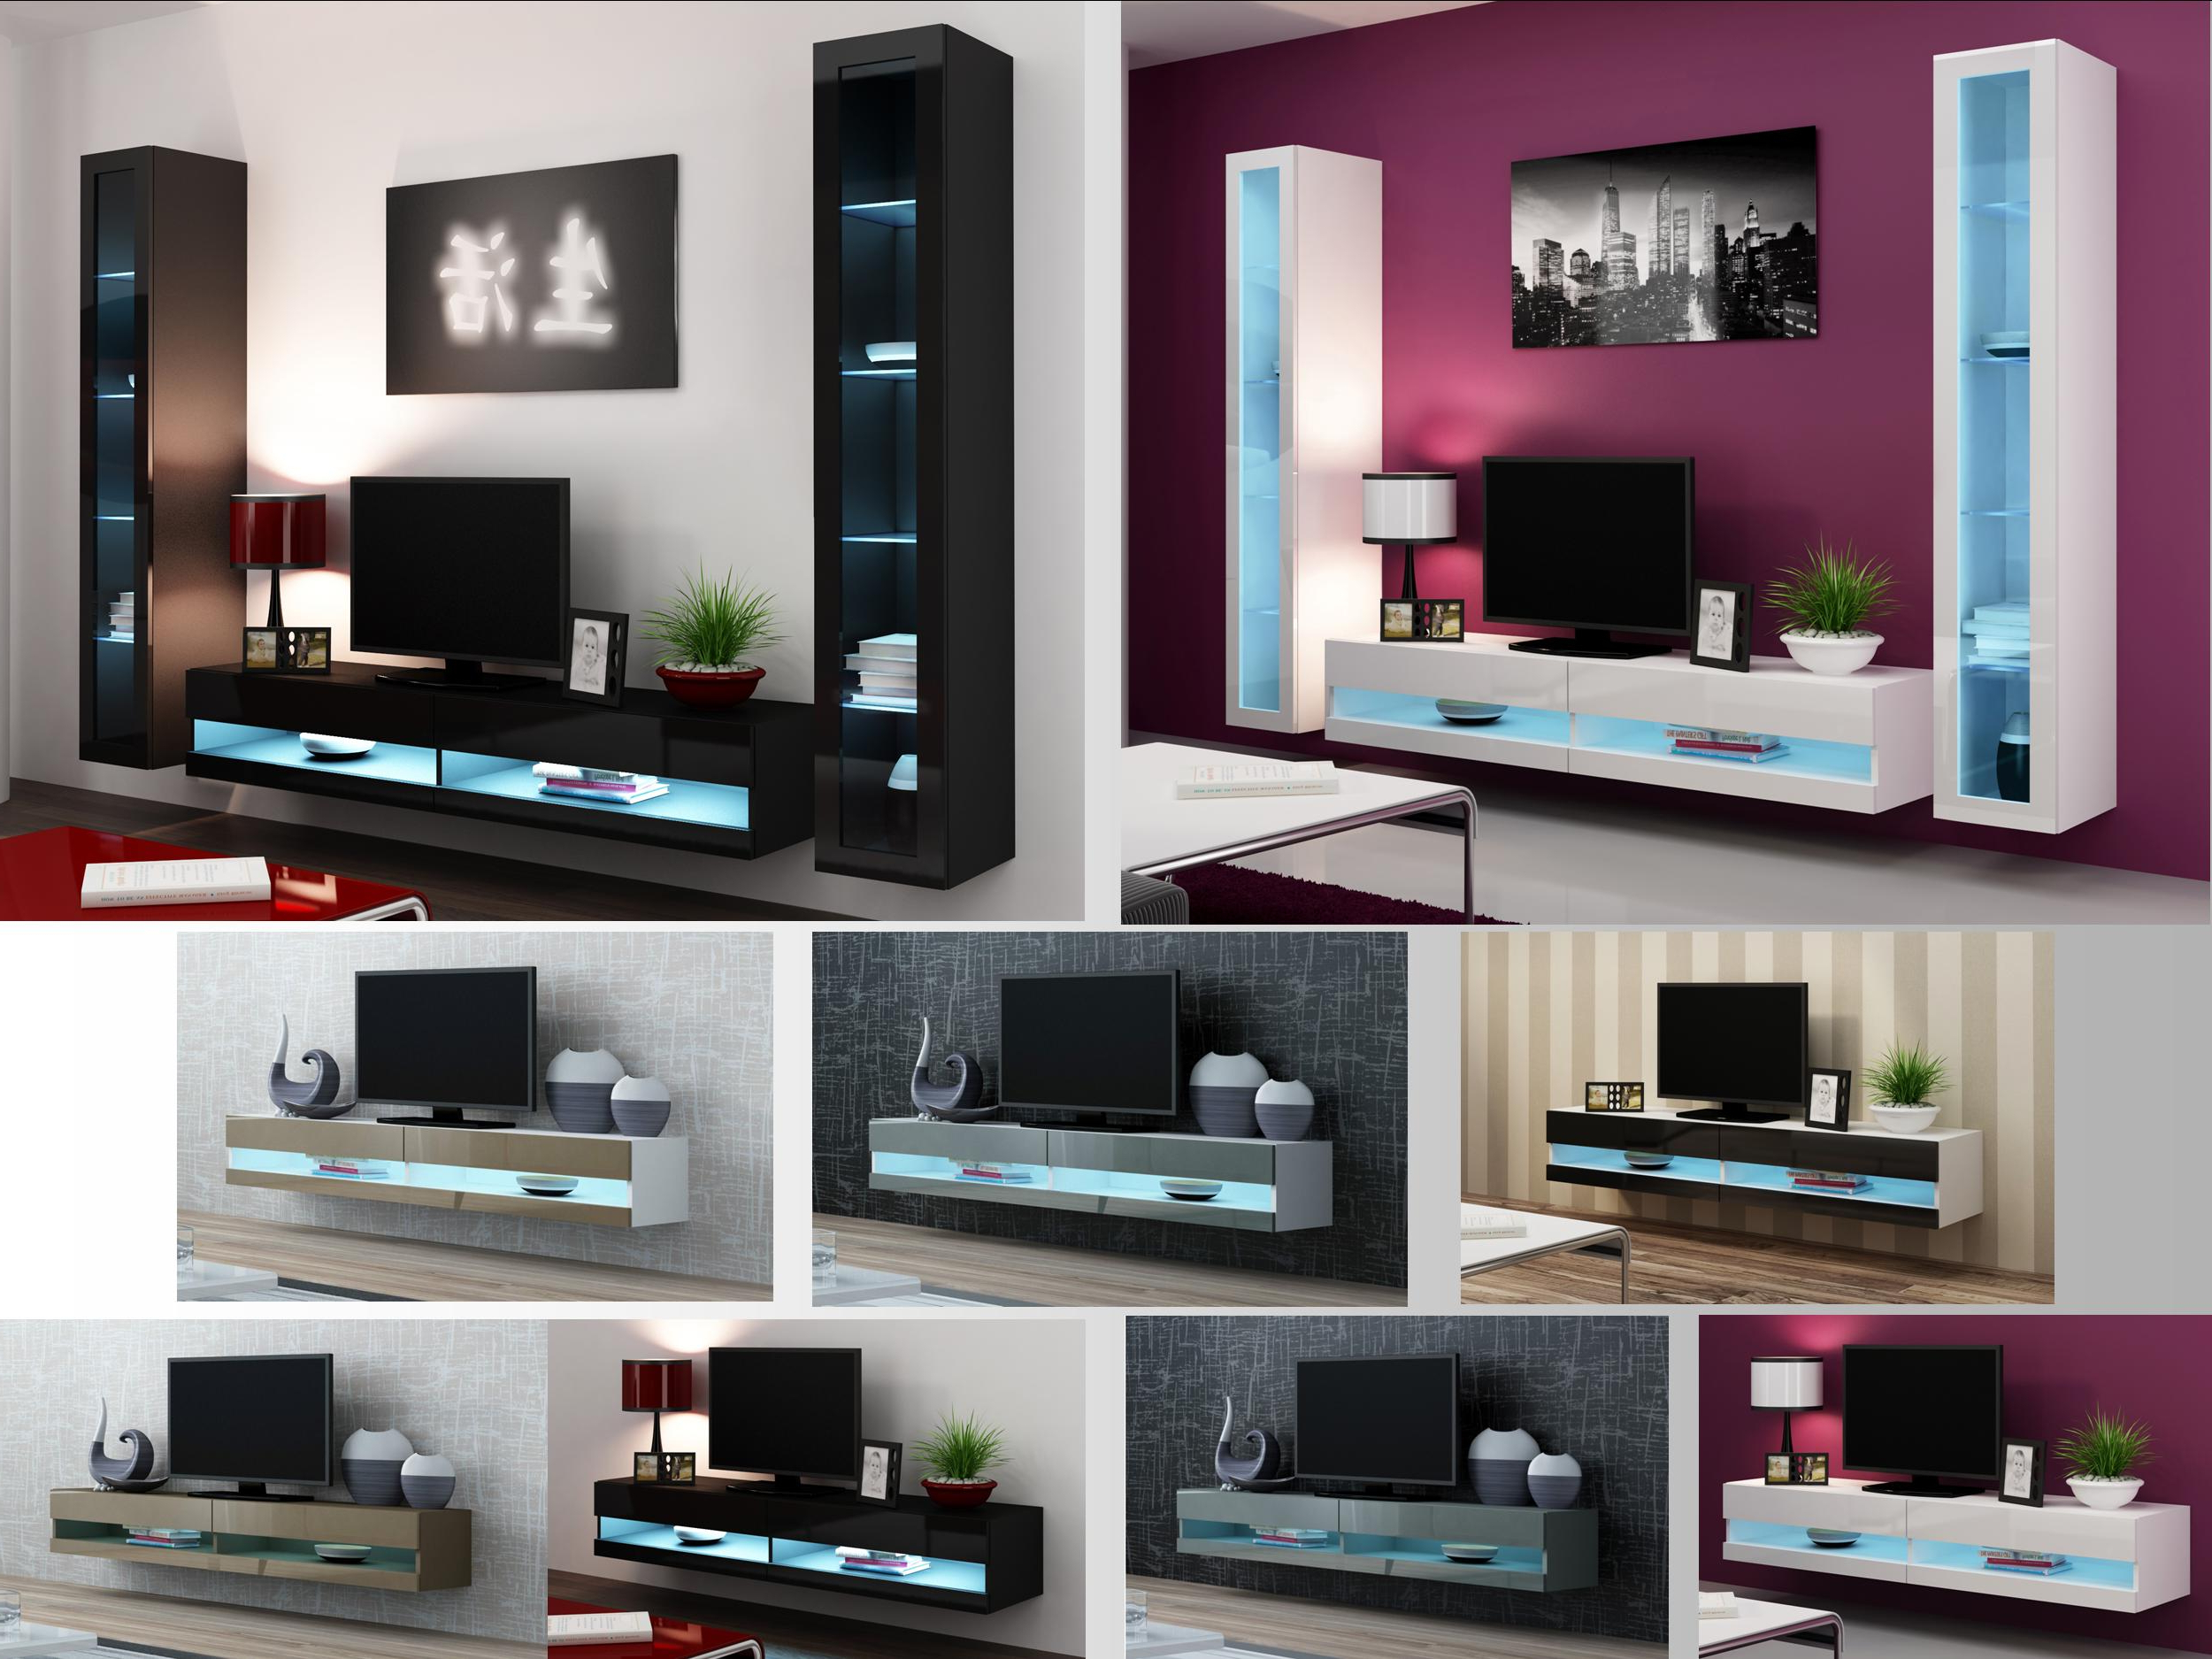 2018 High Gloss Living Room Furniture – Tv Stand, Wall Mounted Cabinet Intended For Tv Stands With Led Lights (Gallery 3 of 20)